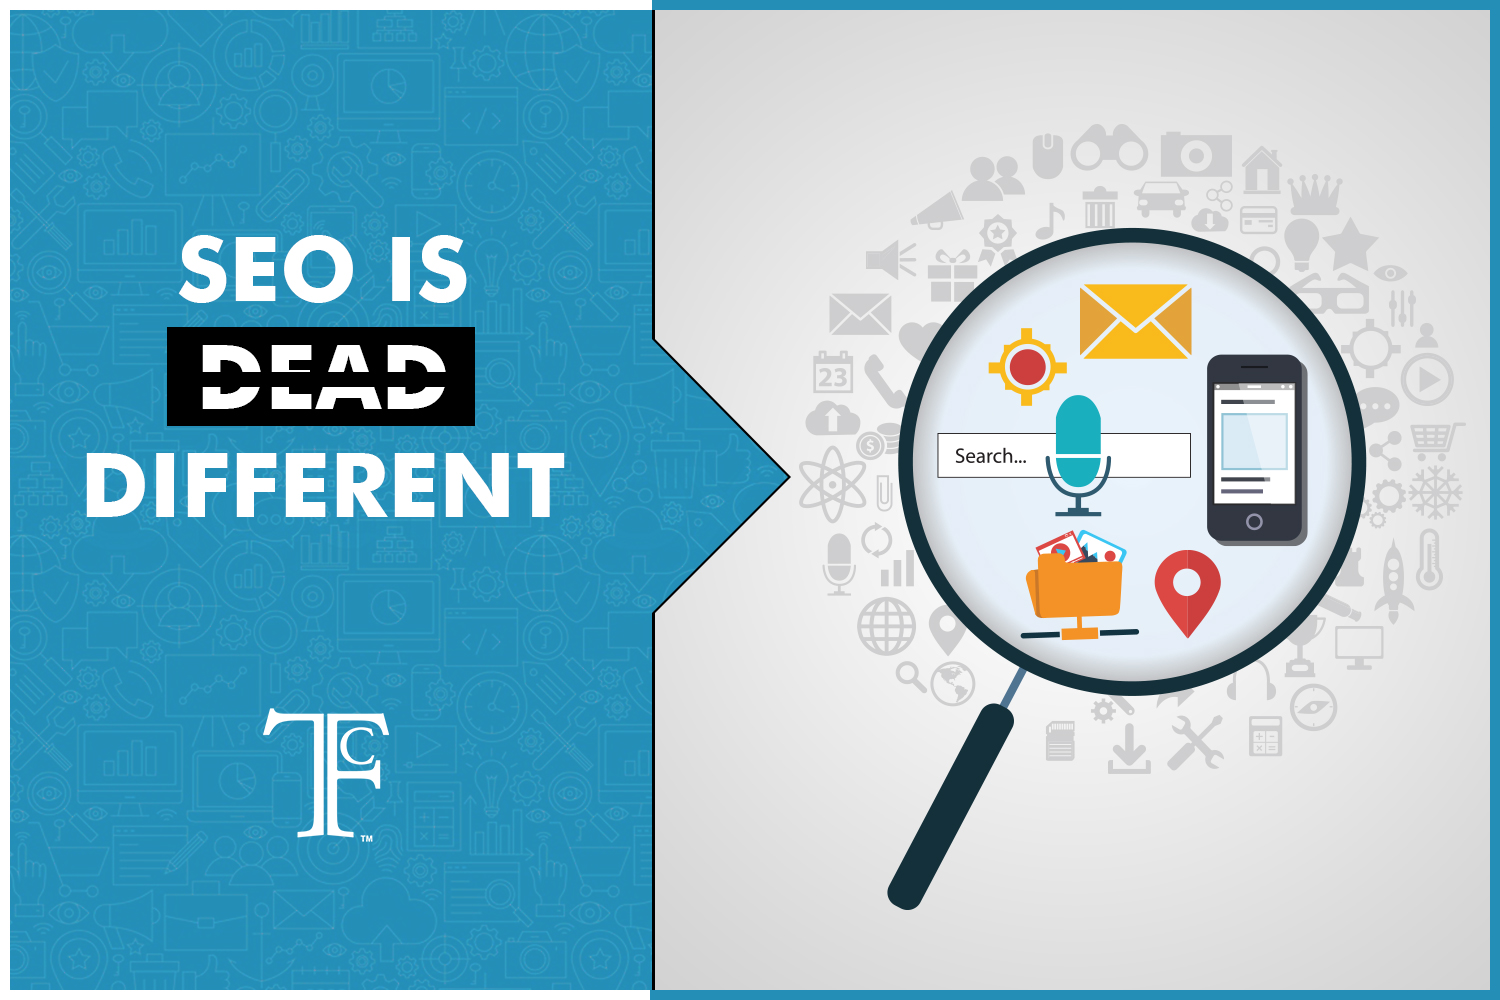 seo-is-dead-different